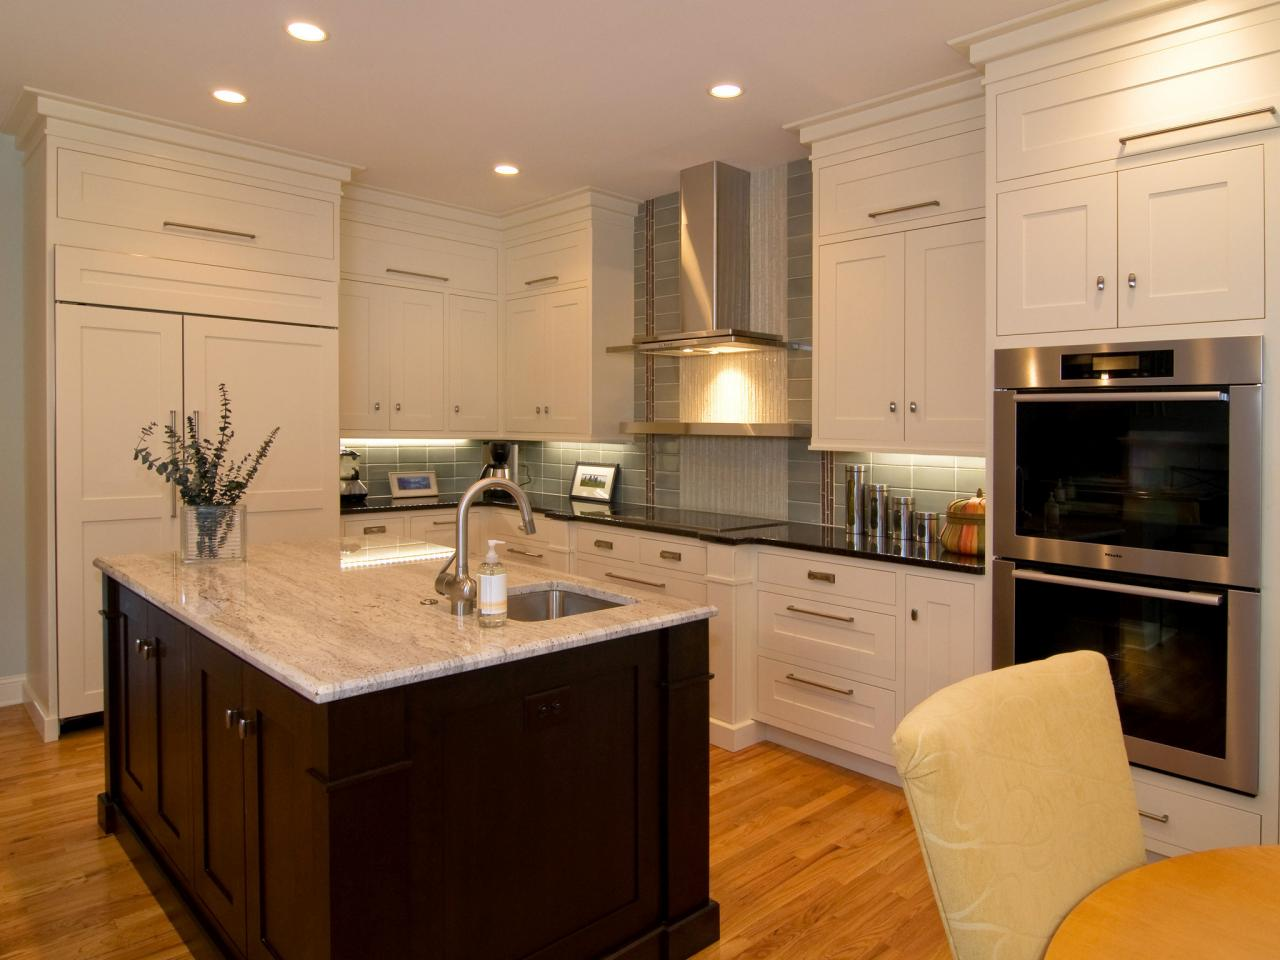 White shaker kitchen cabinets alba kitchen design center kitchen cabinets nj Kitchen and bath design center lake hopatcong nj